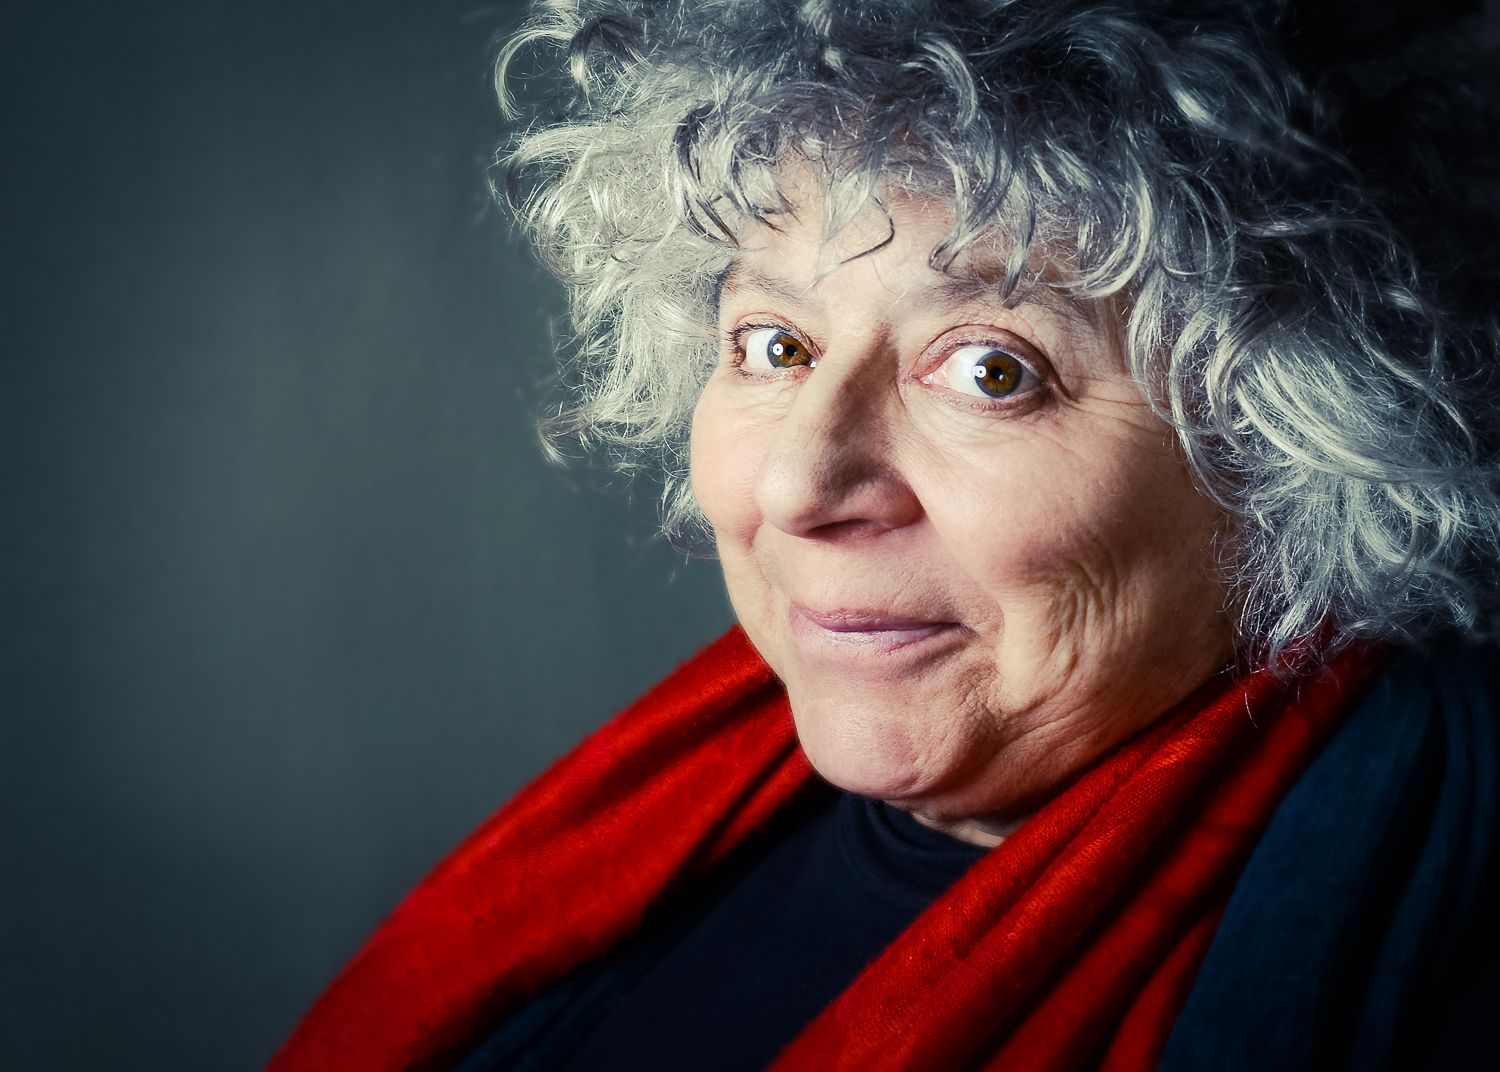 miriam margolyes blackaddermiriam margolyes partner, miriam margolyes harry potter, miriam margolyes heather sutherland, miriam margolyes on the graham norton show, miriam margolyes youtube, miriam margolyes mamma mia, miriam margolyes young, miriam margolyes ladies in lavender, miriam margolyes stanley tucci, miriam margolyes heather sutherland photos, miriam margolyes graham norton matthew perry, miriam margolyes the real marigold hotel, miriam margolyes net worth, miriam margolyes imdb, miriam margolyes graham norton 2014, miriam margolyes blackadder, miriam margolyes india, miriam margolyes movies and tv shows, miriam margolyes biography, miriam margolyes melbourne